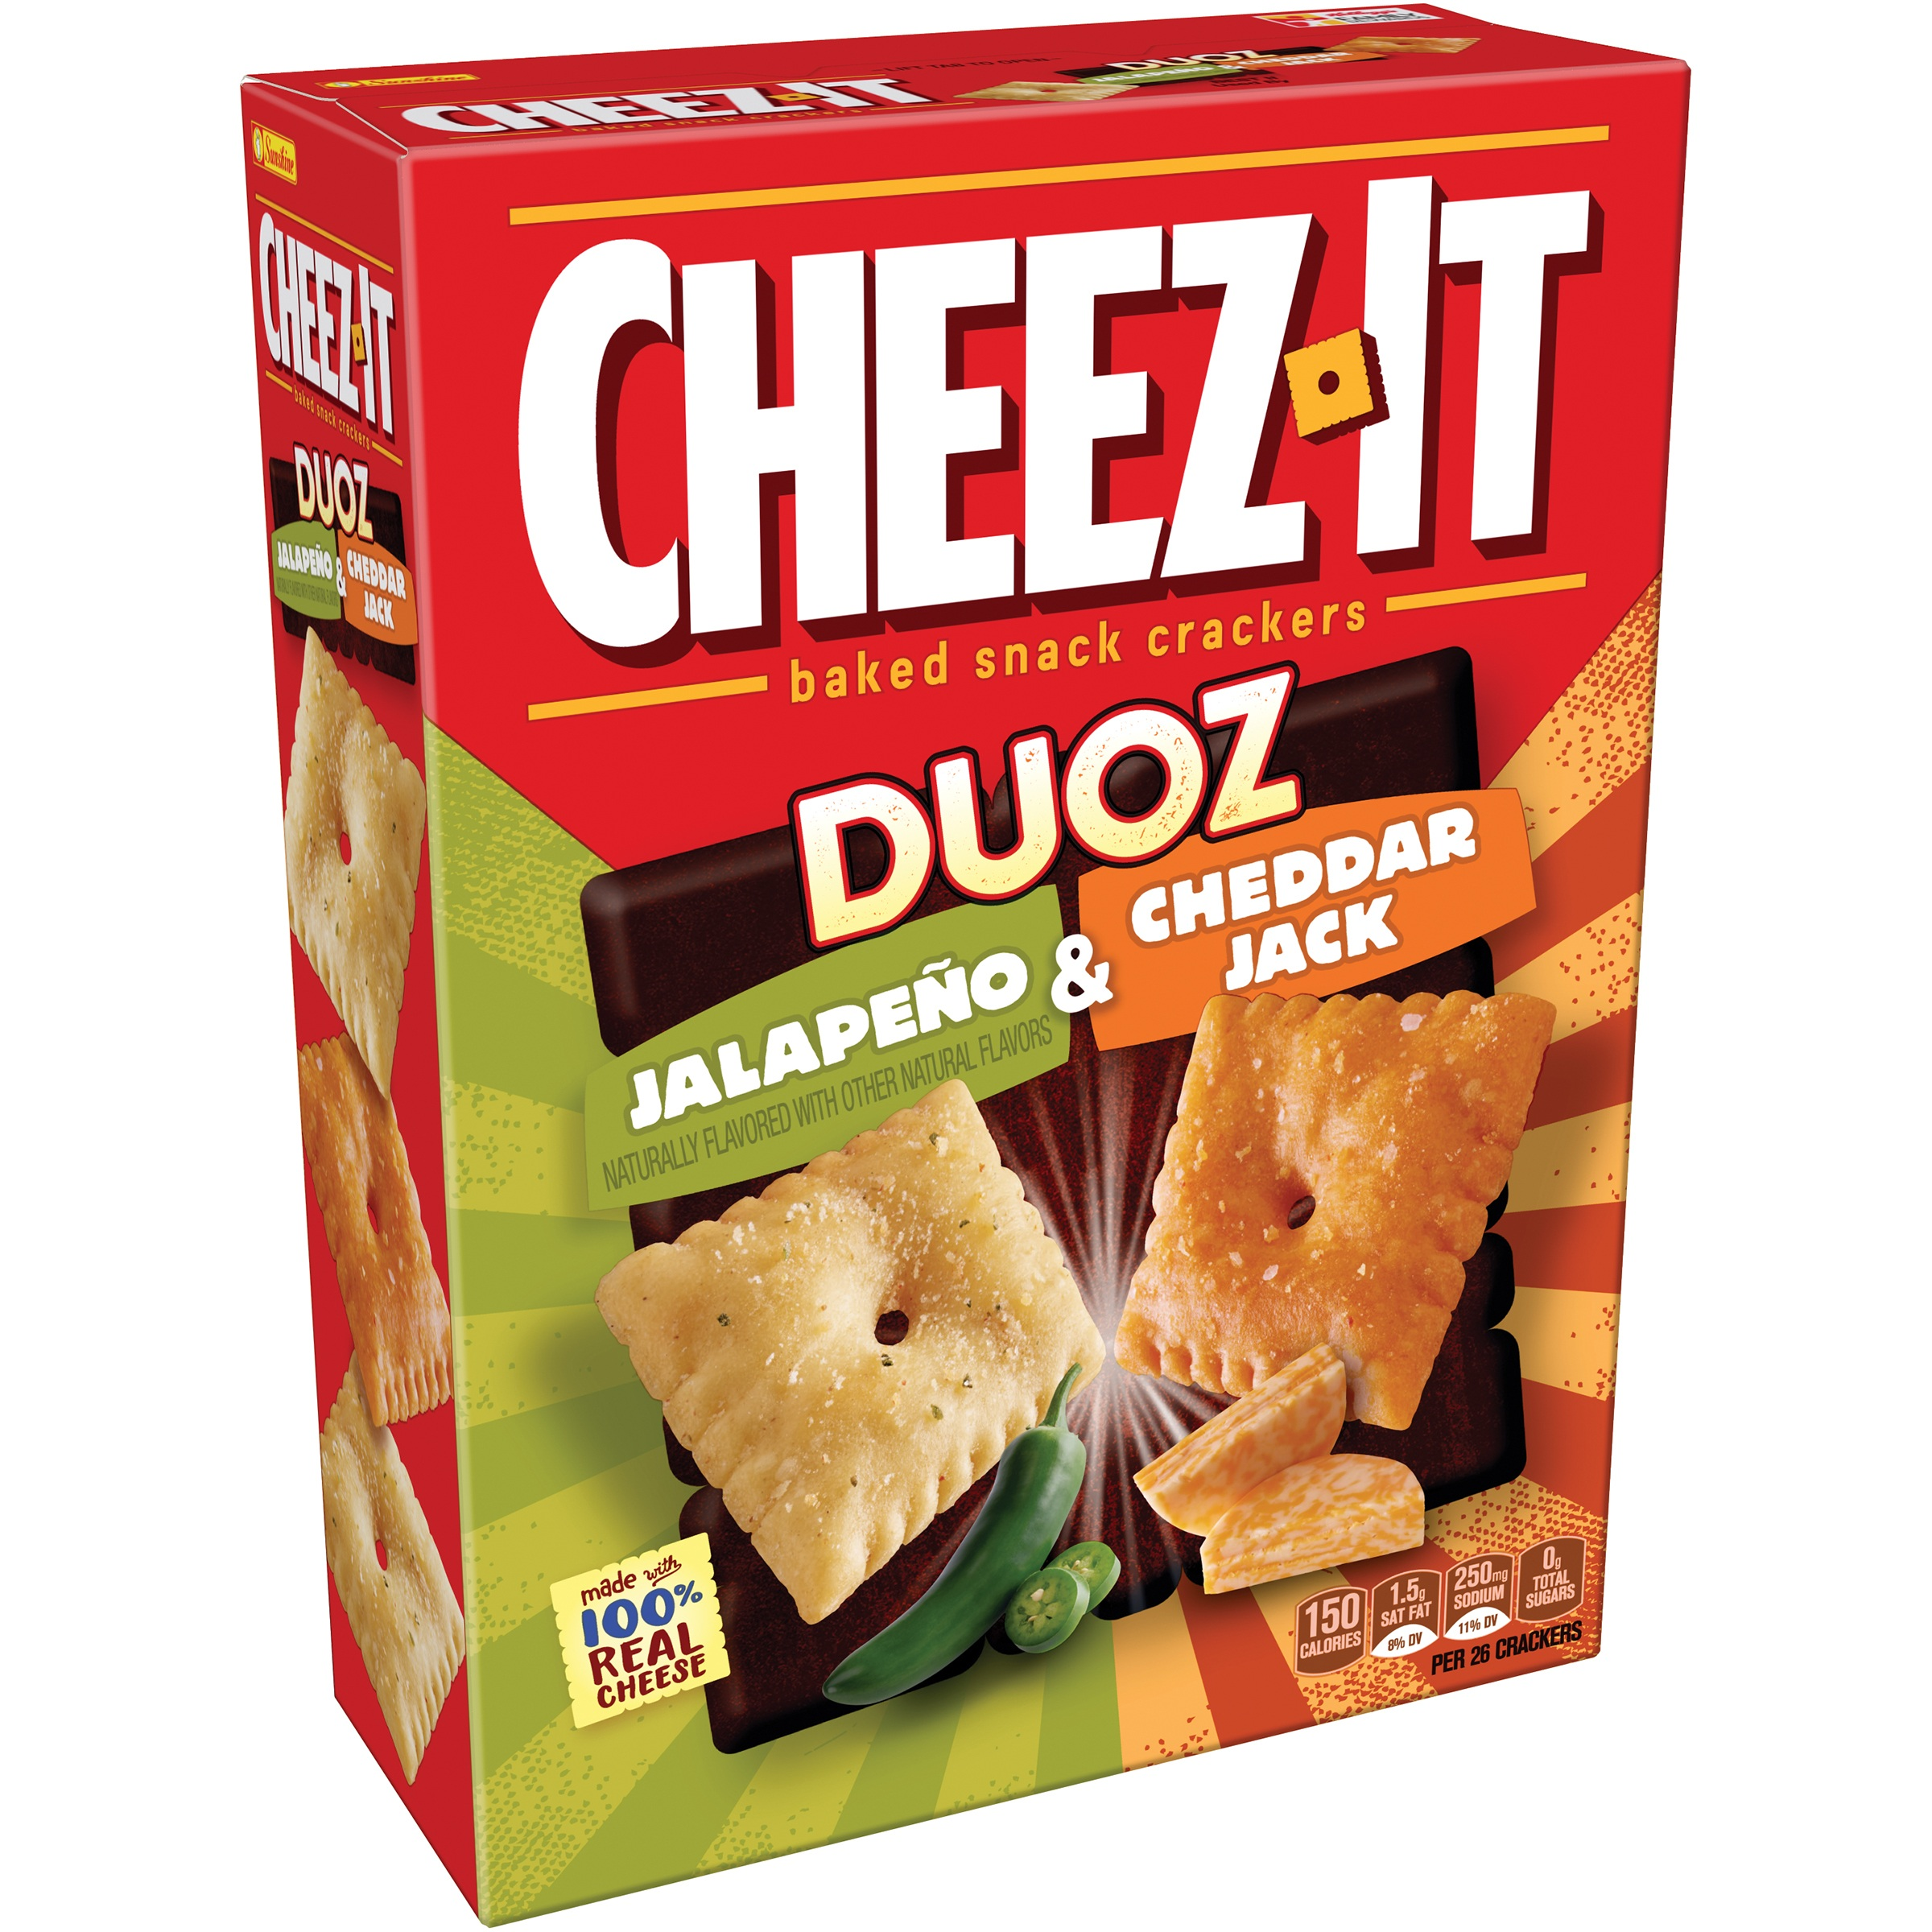 (2 Pack) Cheez-It Duoz Jalapeo & Cheddar Jack Baked Snack Crackers 12.4 oz. Box